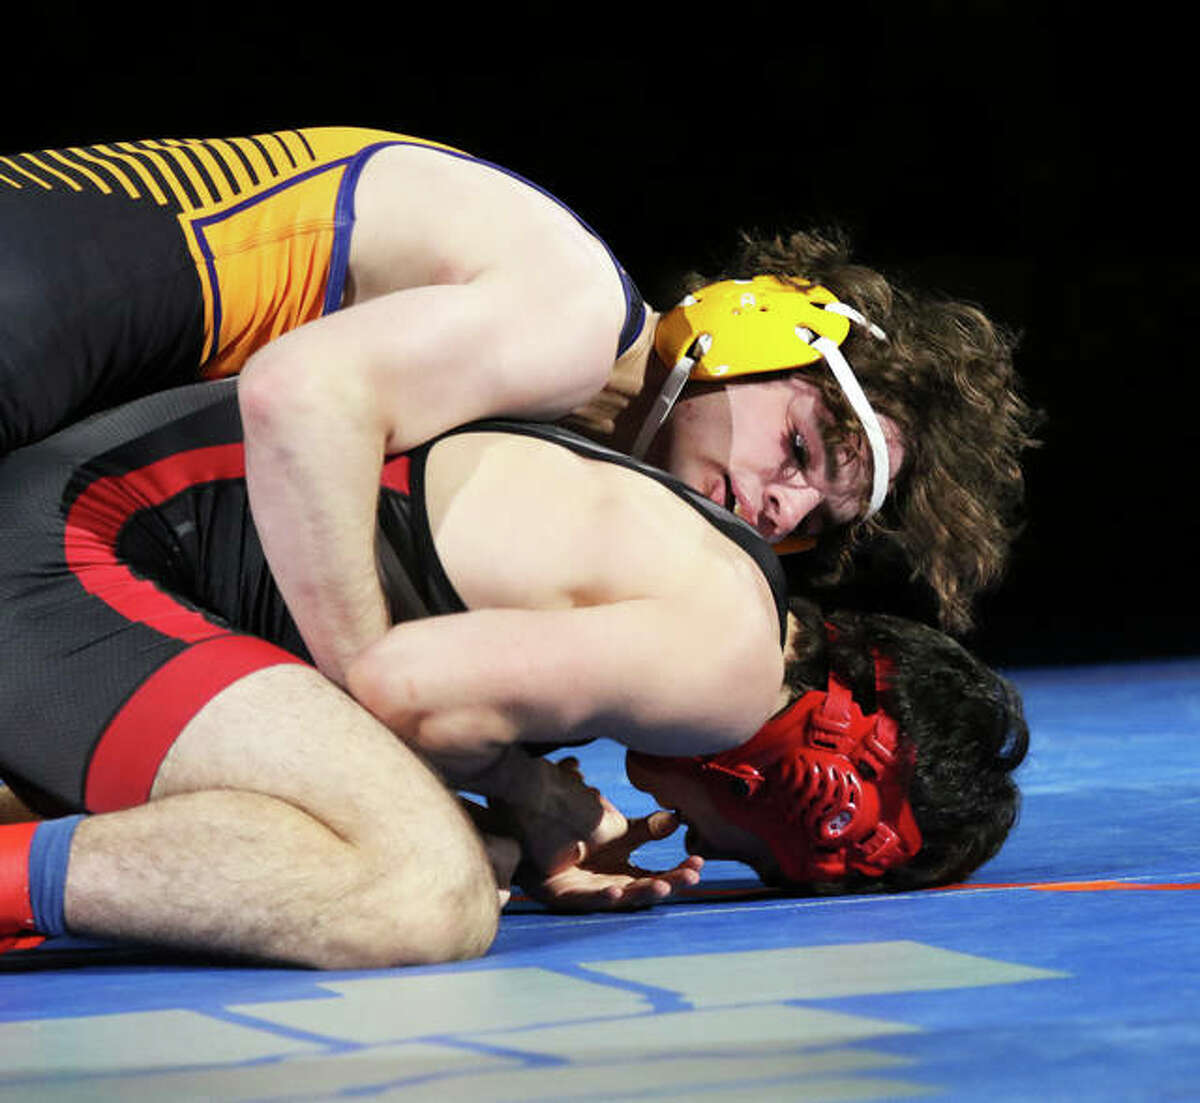 CM senior Vinny Zerban (top) works over Deerfield's Ben Shvartsman in the 152-pound title match at the IWCOA Class 2A state meet on June 25 in Springfield. Zerban won by fall in 48 seconds to finish the season 28-0.